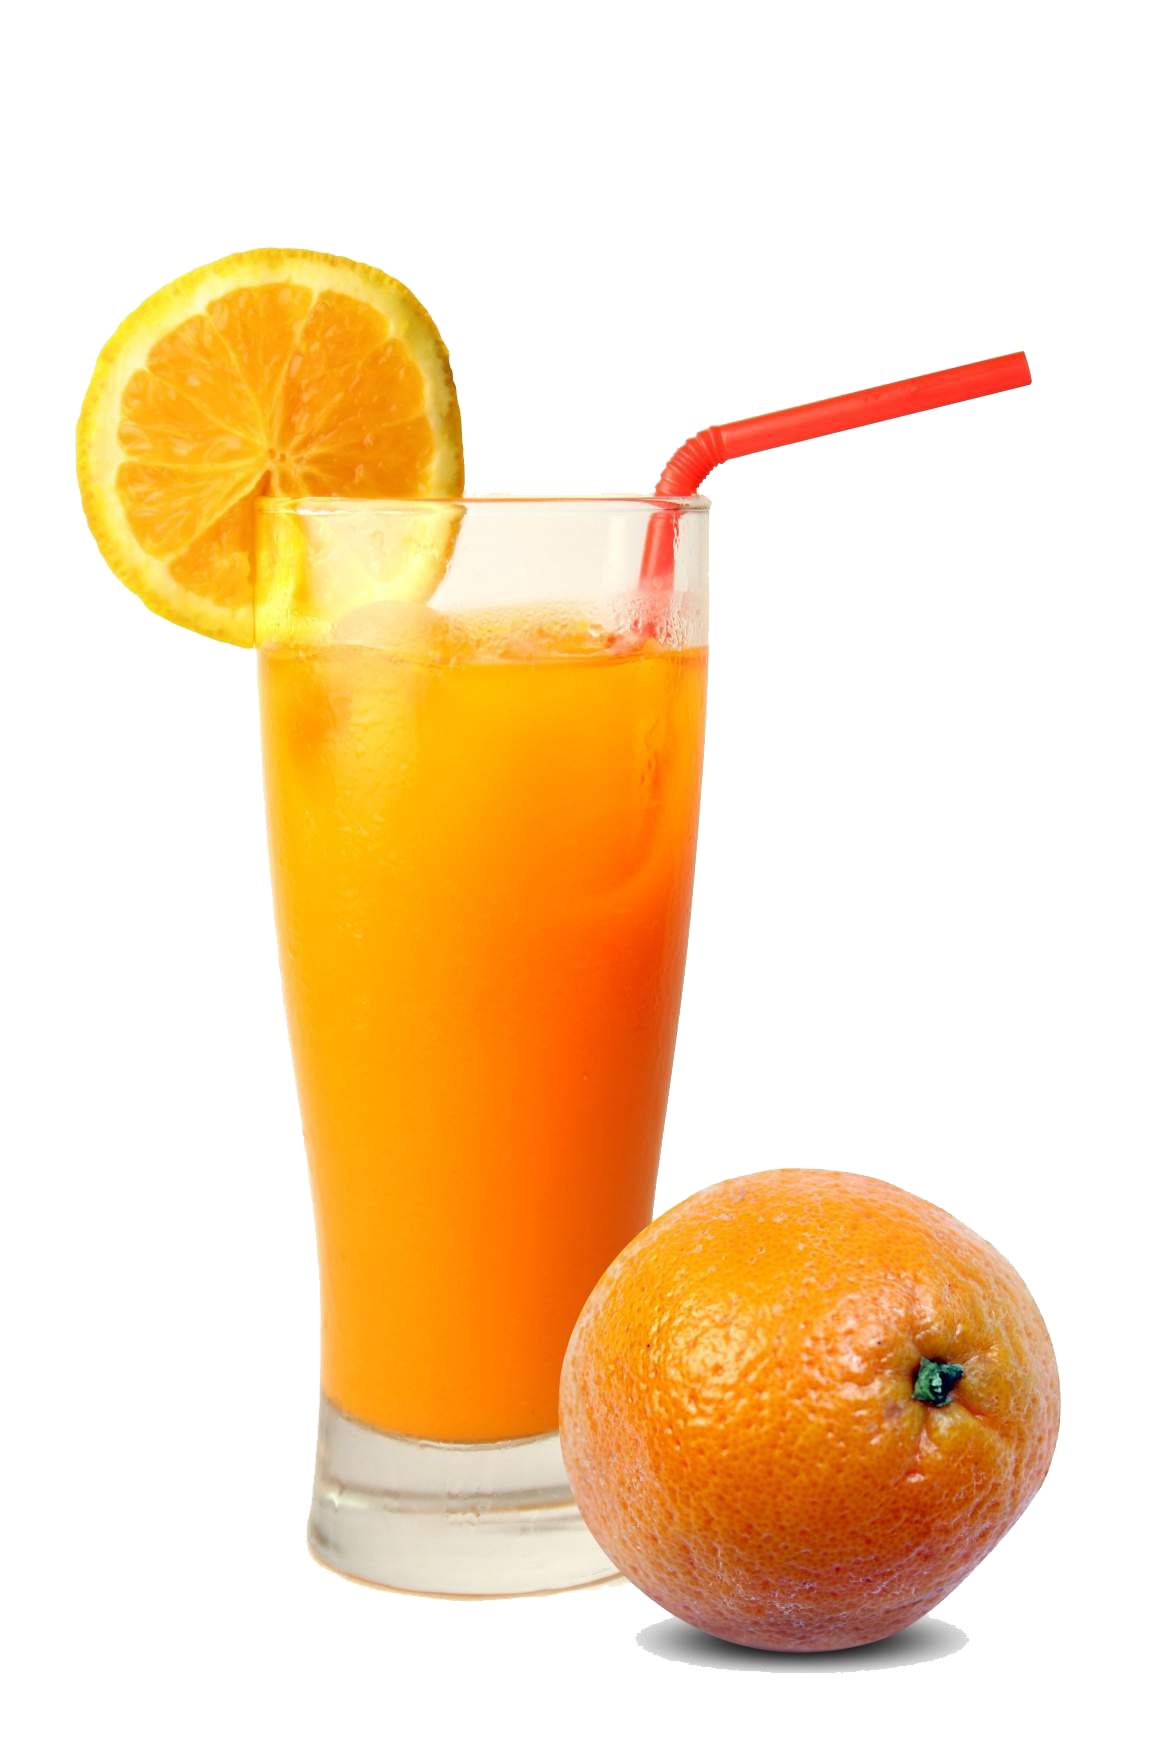 Drink clipart punch drink. Juice transparent png pictures